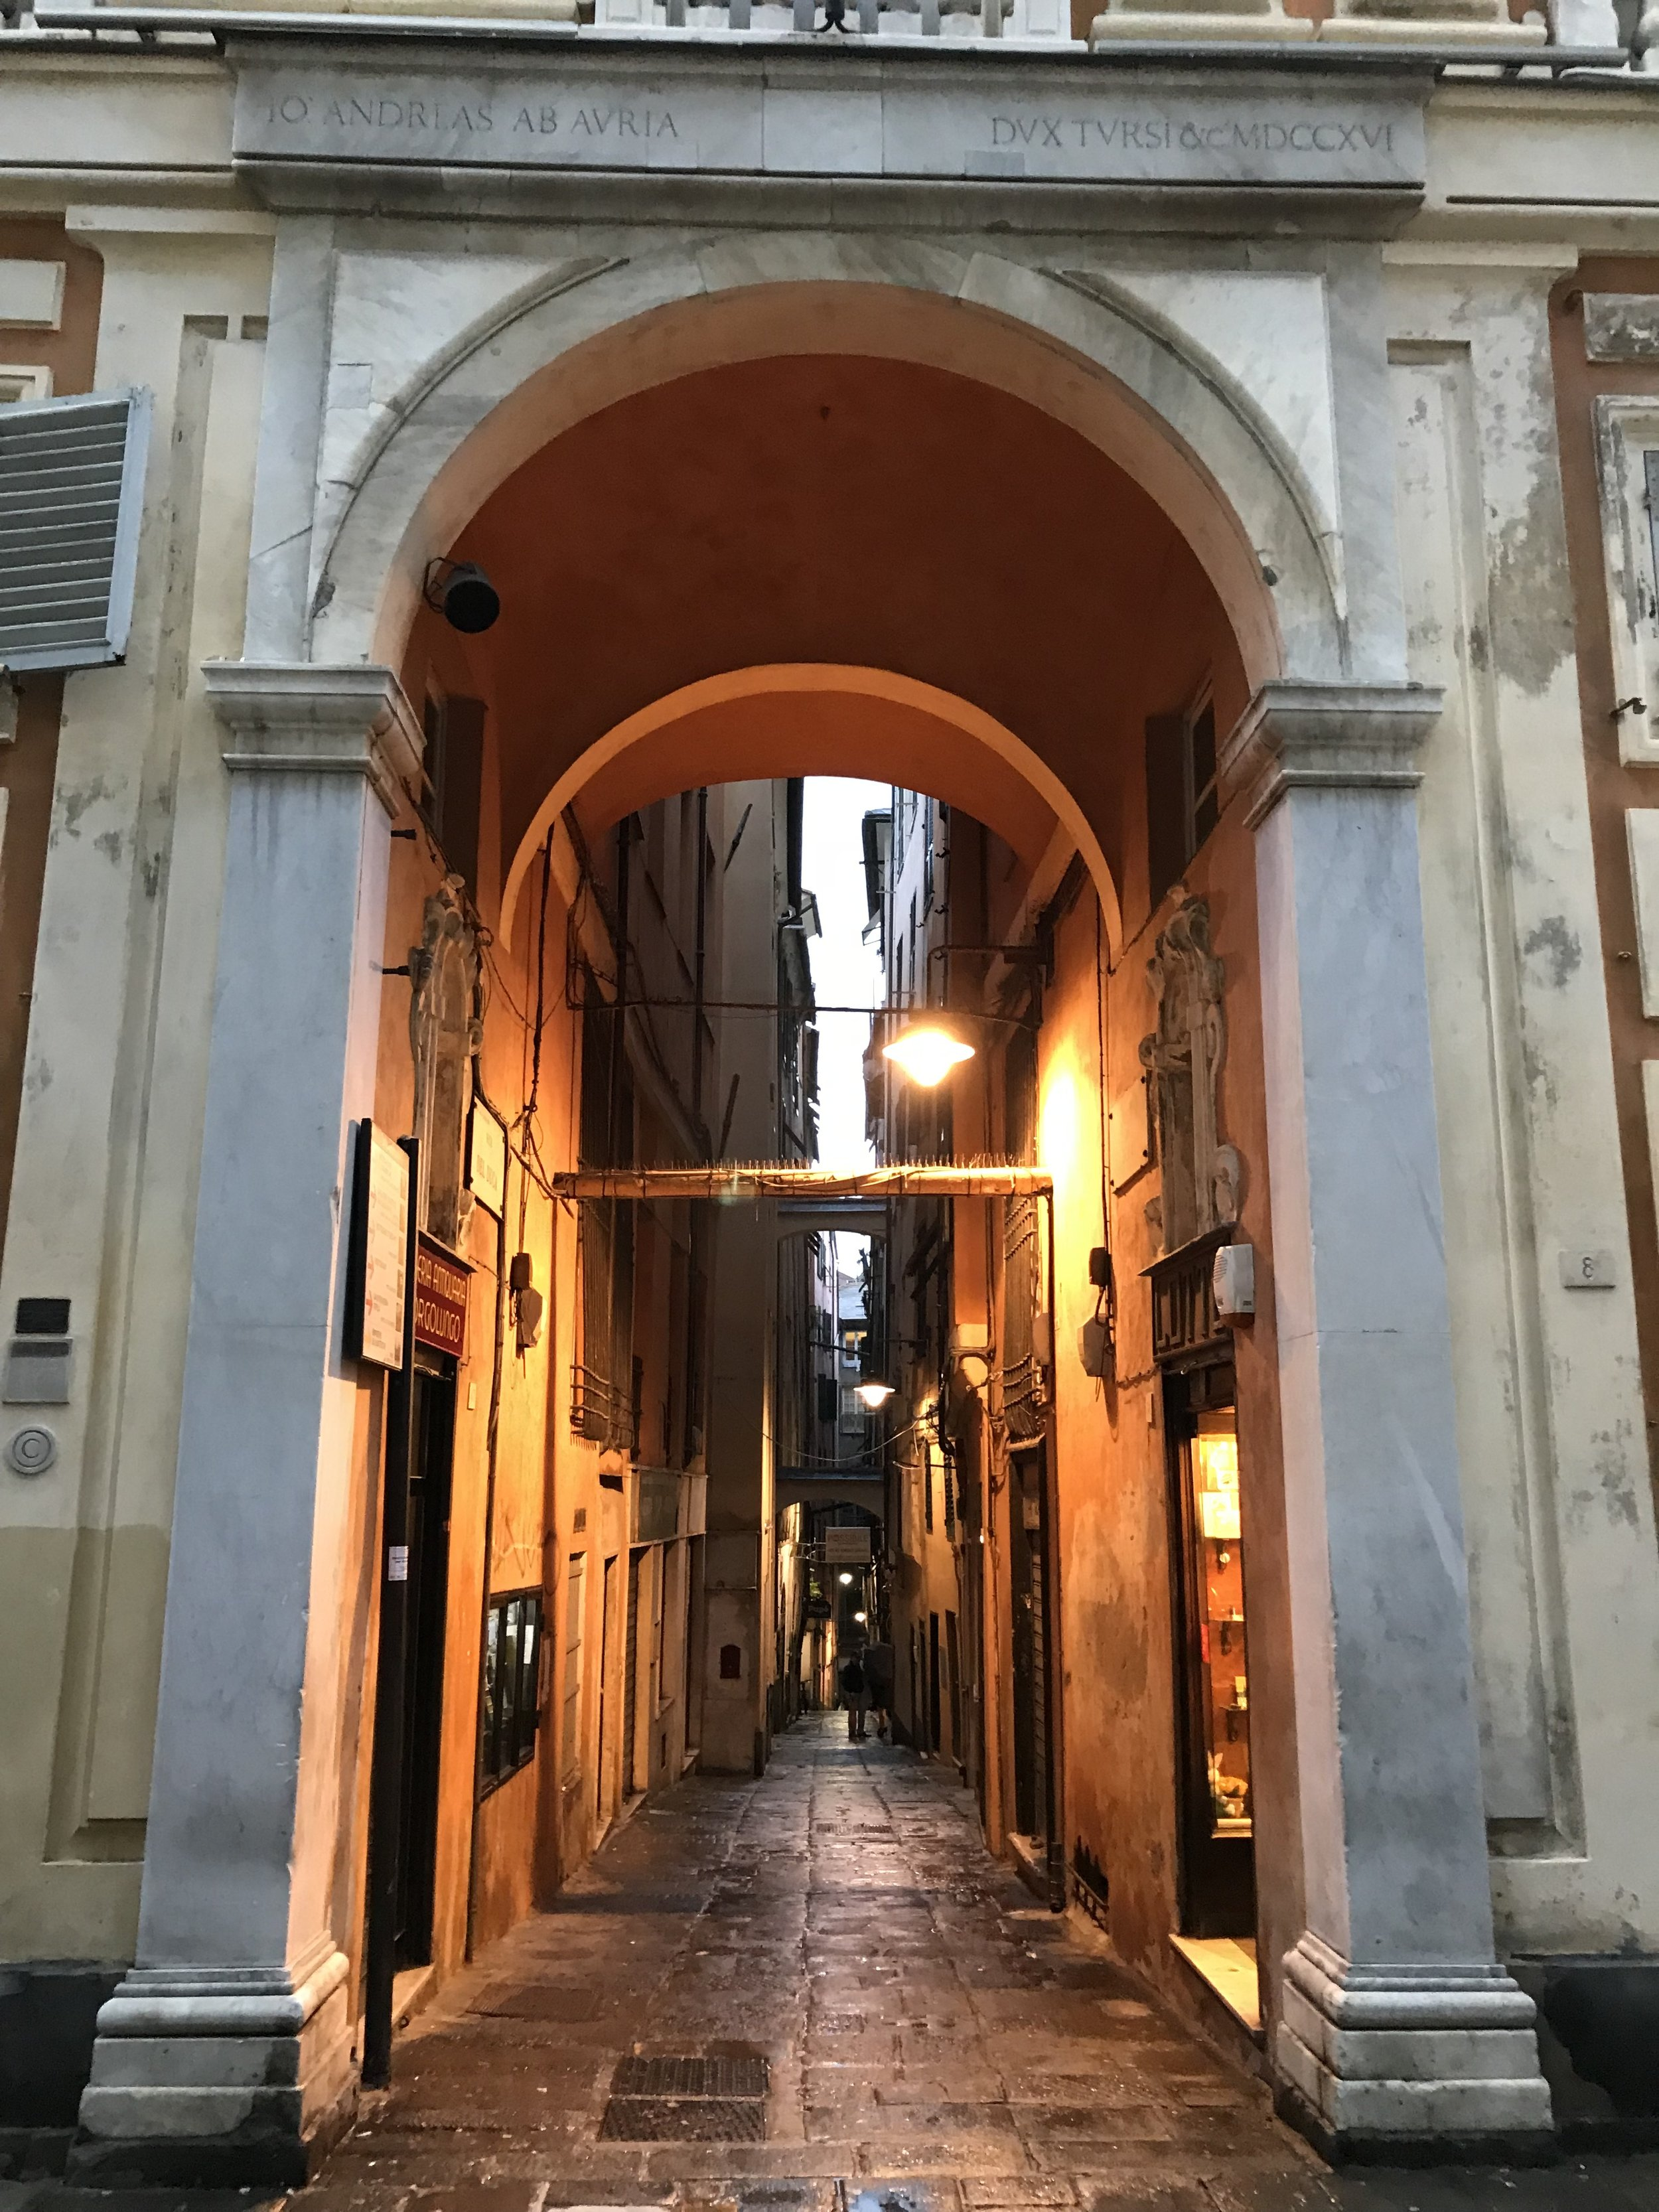 A typical street in Genoa's historical center, you can spend the whole day walking around these